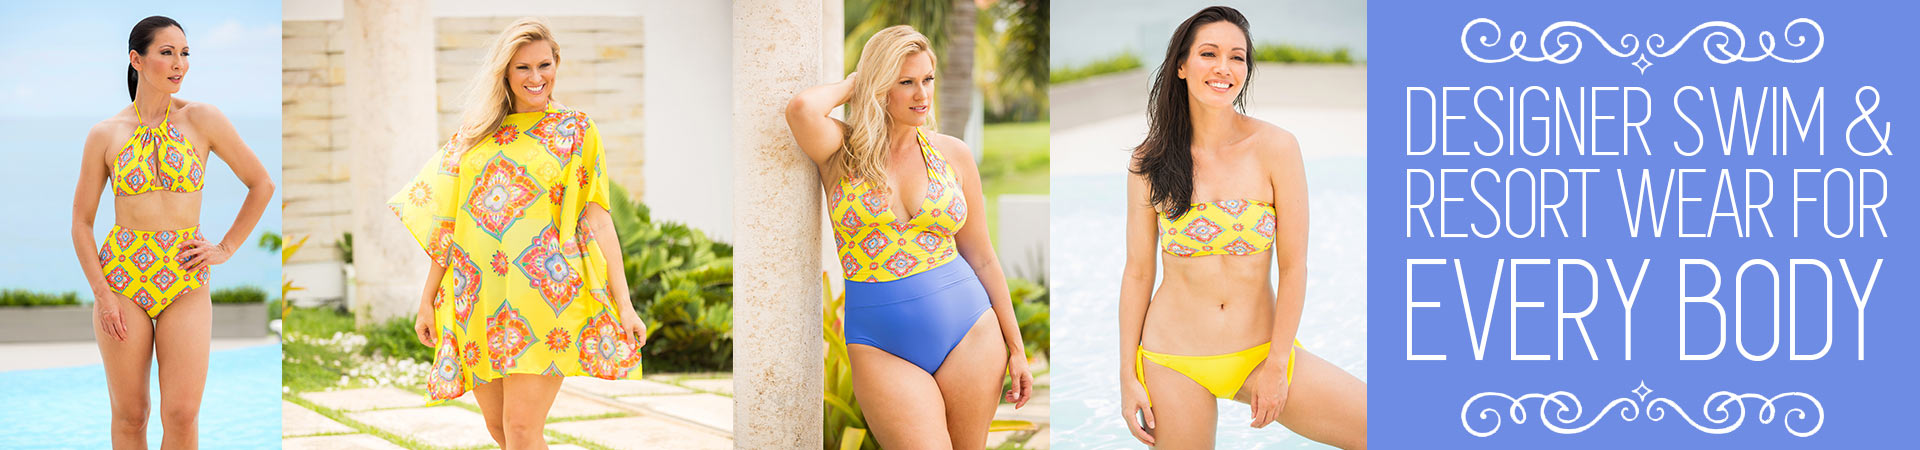 Designer swim separates from Tara Grinna.